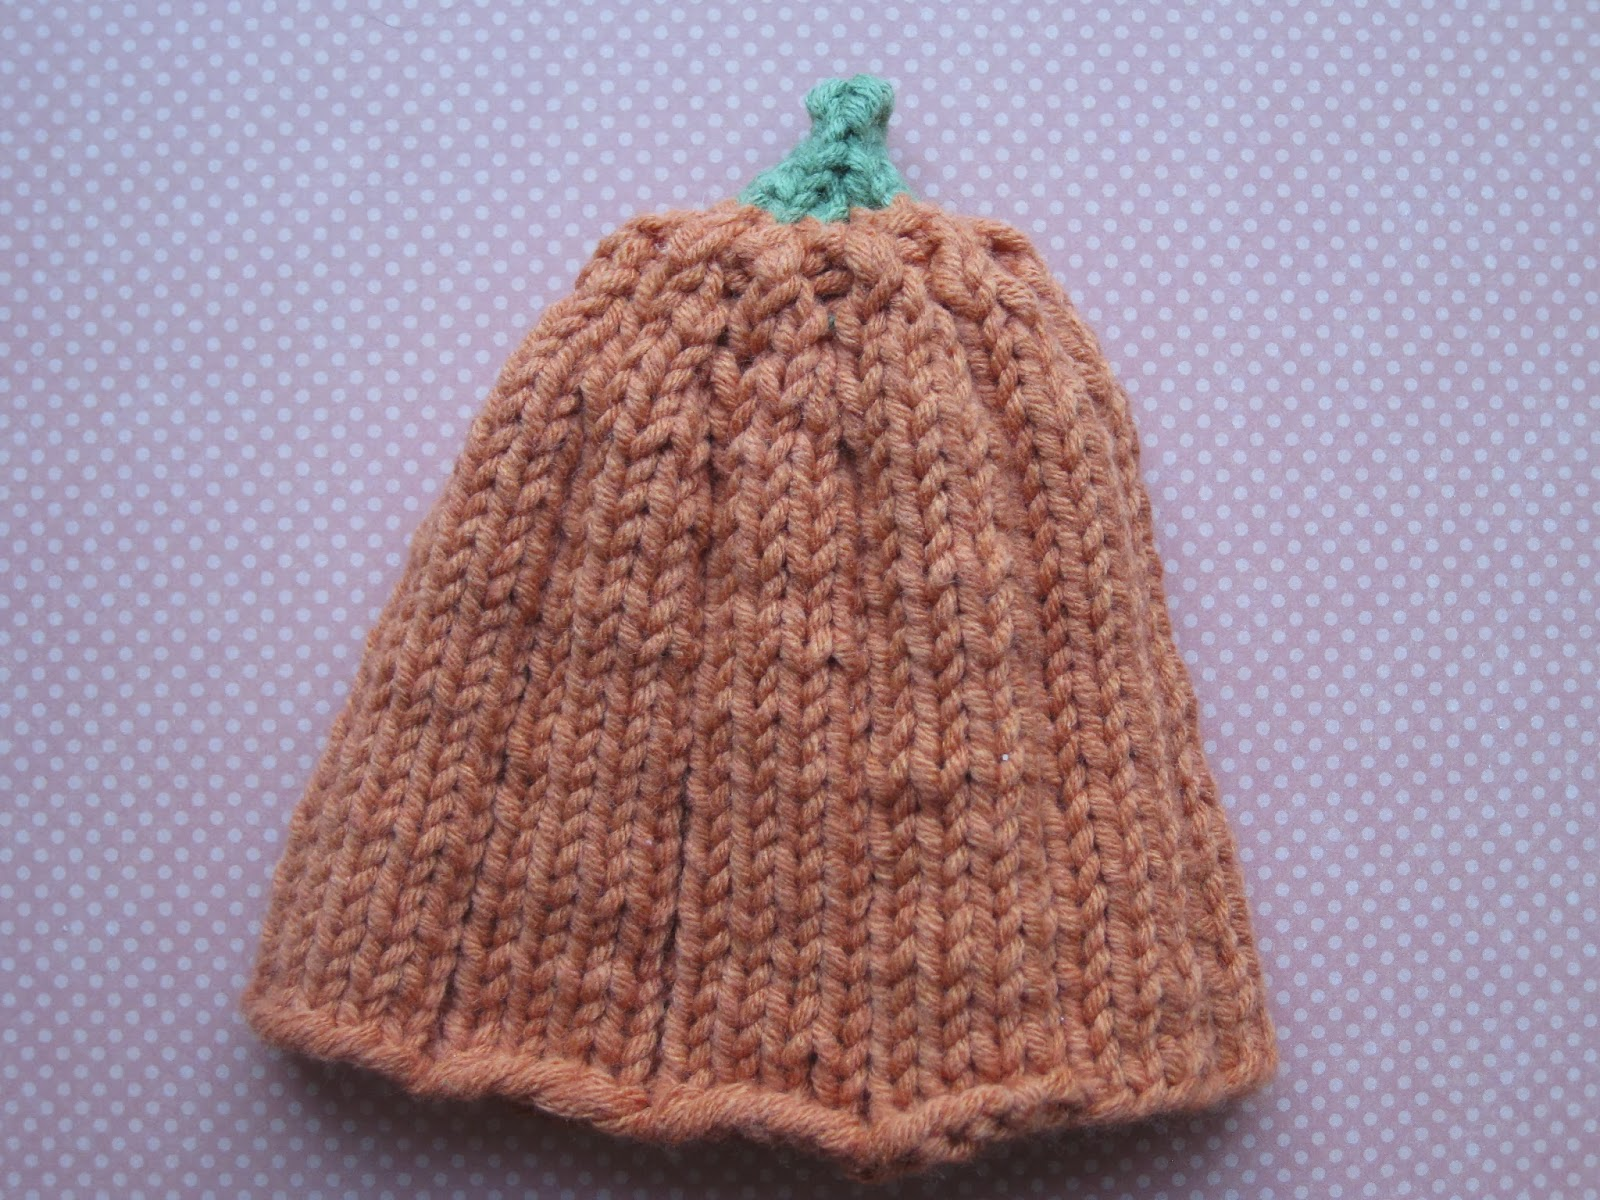 Tea Cosy Knitting Pattern Book : Oma Socks: Newborn Pumpkin Hat Knitting Pattern